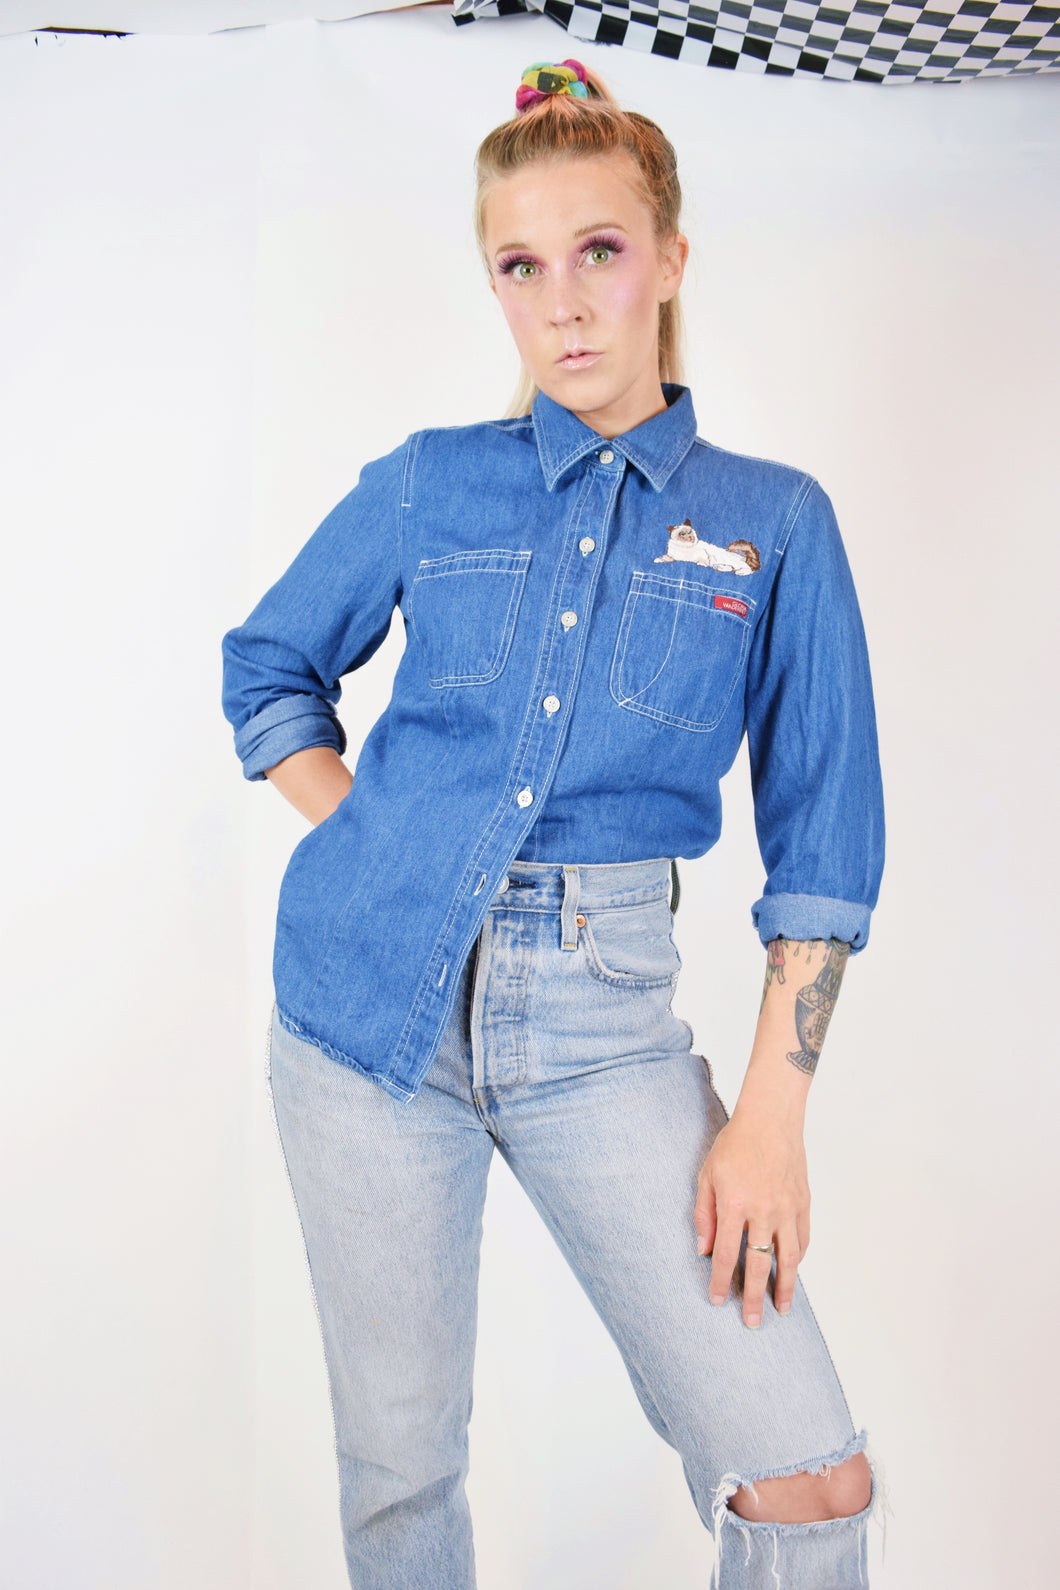 90s DENIM KITTY BUTTON UP - SMALL